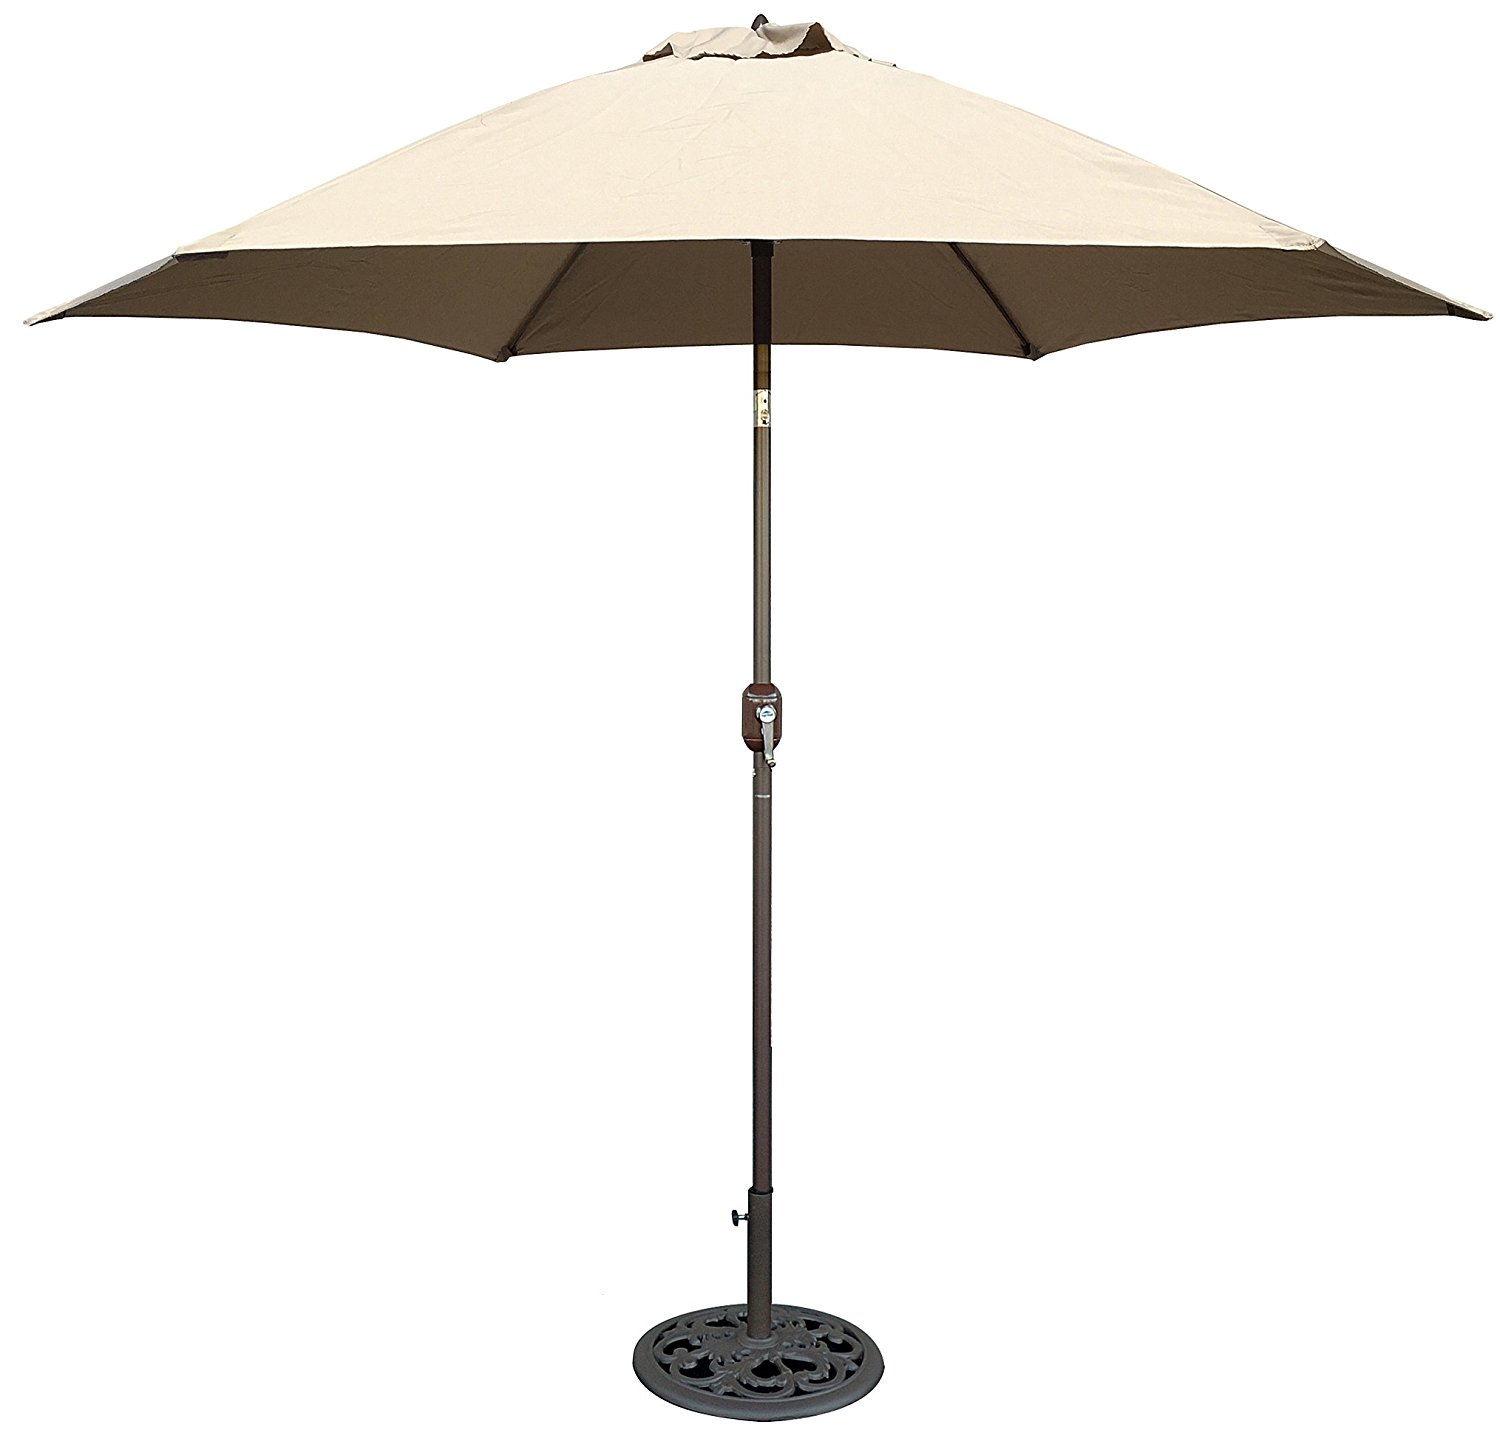 Review of Tropishade 9 ft Bronze Aluminum Patio Umbrella with Beige Polyester Cover